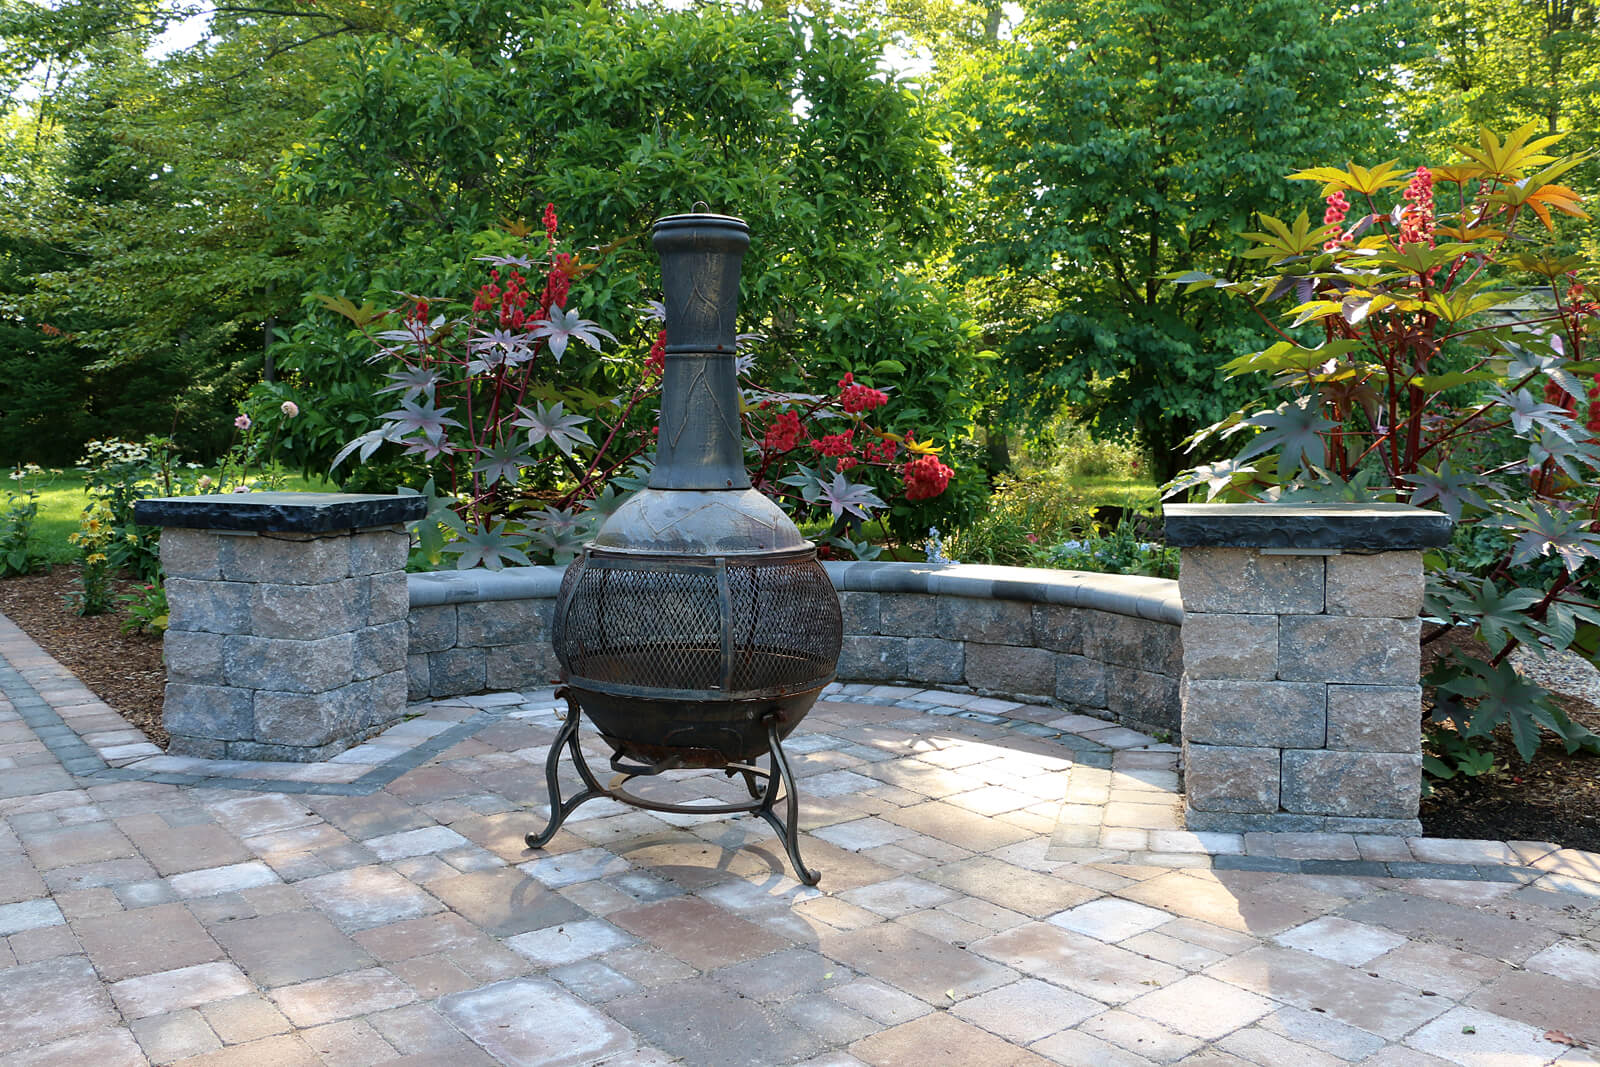 stone patio area with retaining wall and black chiminea